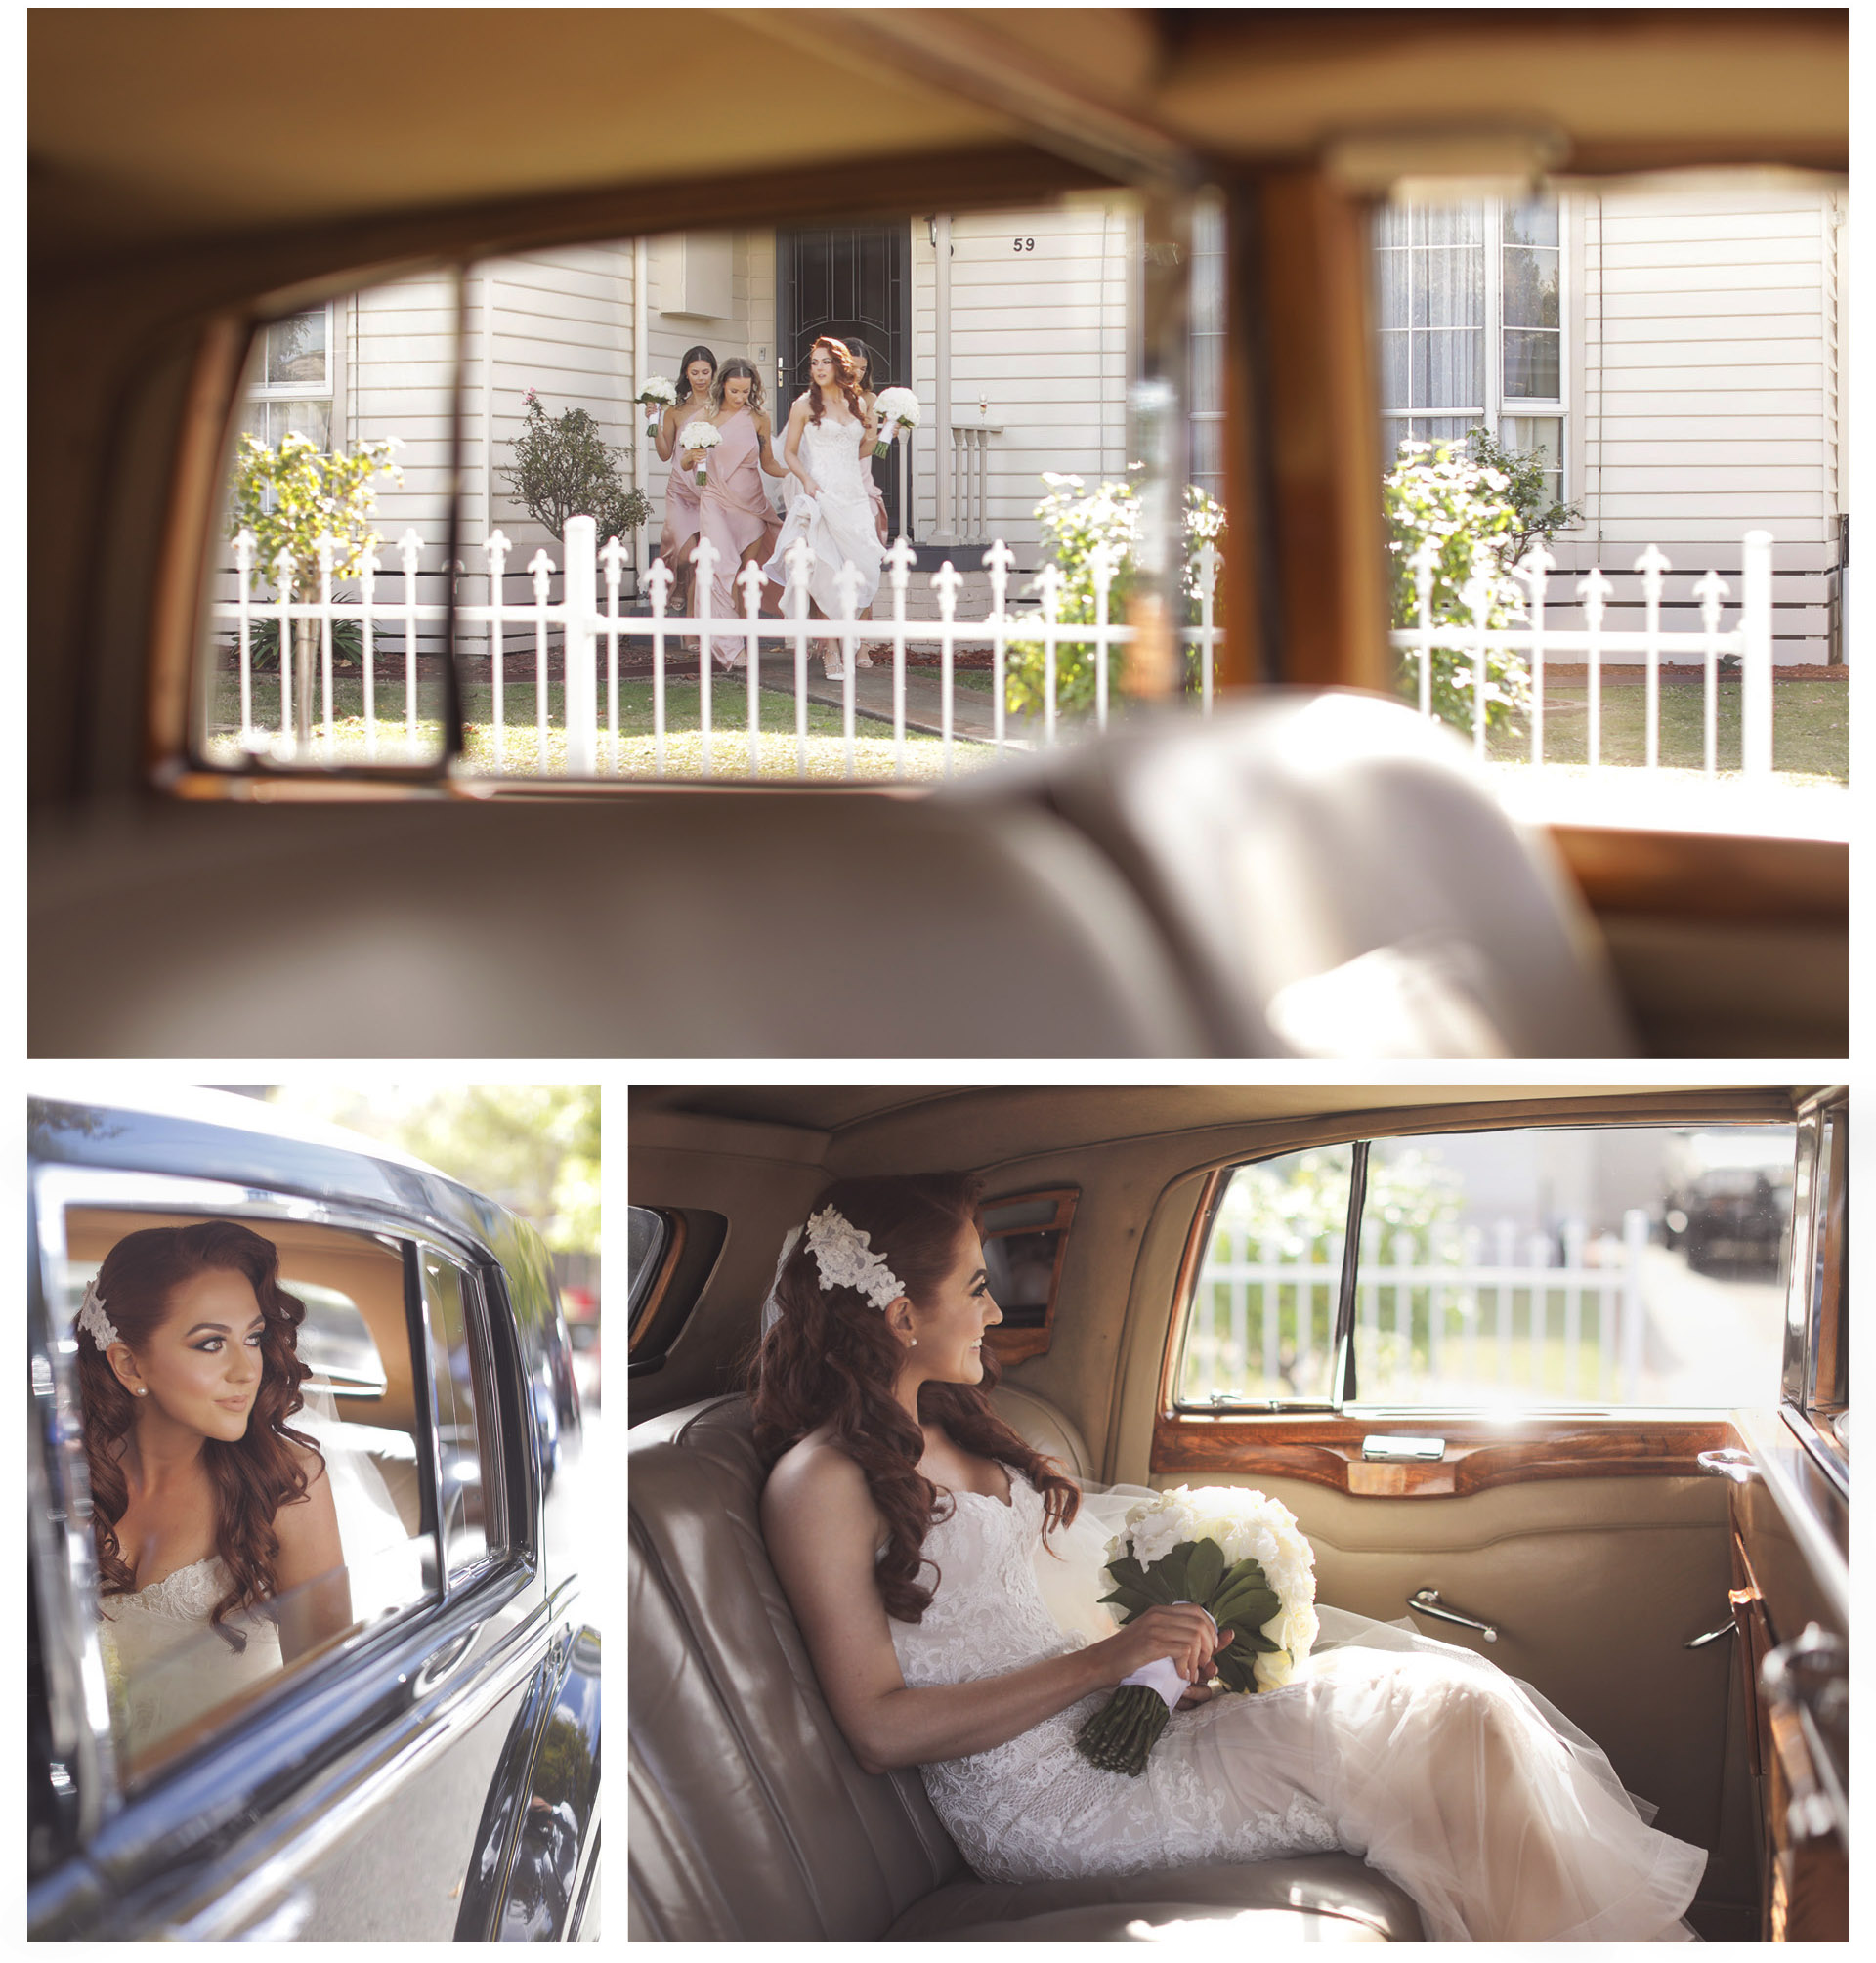 The bride is leaving by a tradional old car from her house